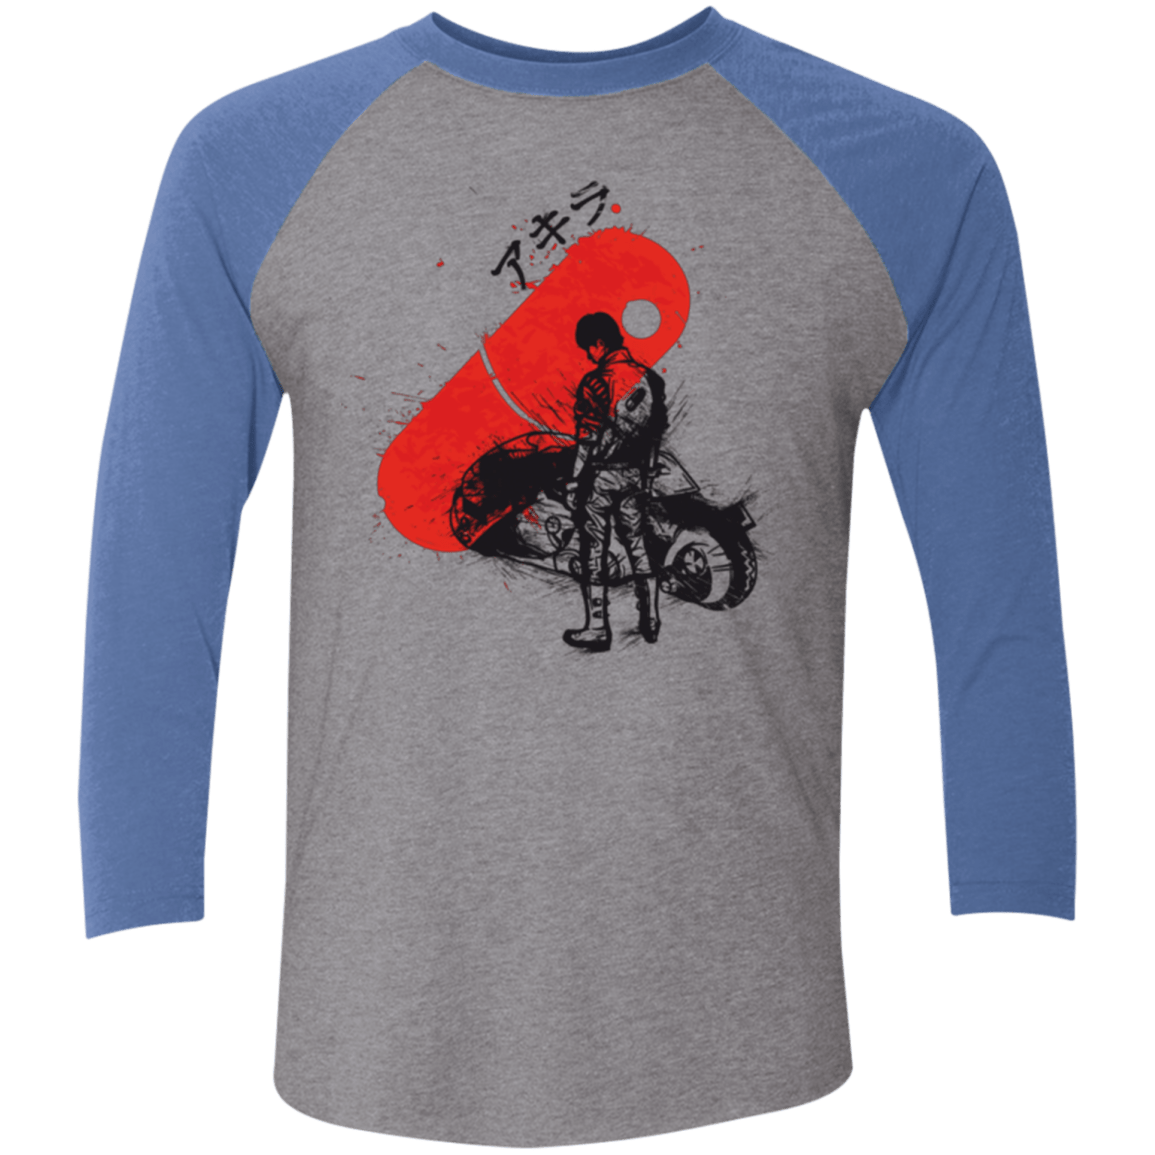 T-Shirts Premium Heather/ Vintage Royal / X-Small RED SUN AKIRA Men's Triblend 3/4 Sleeve